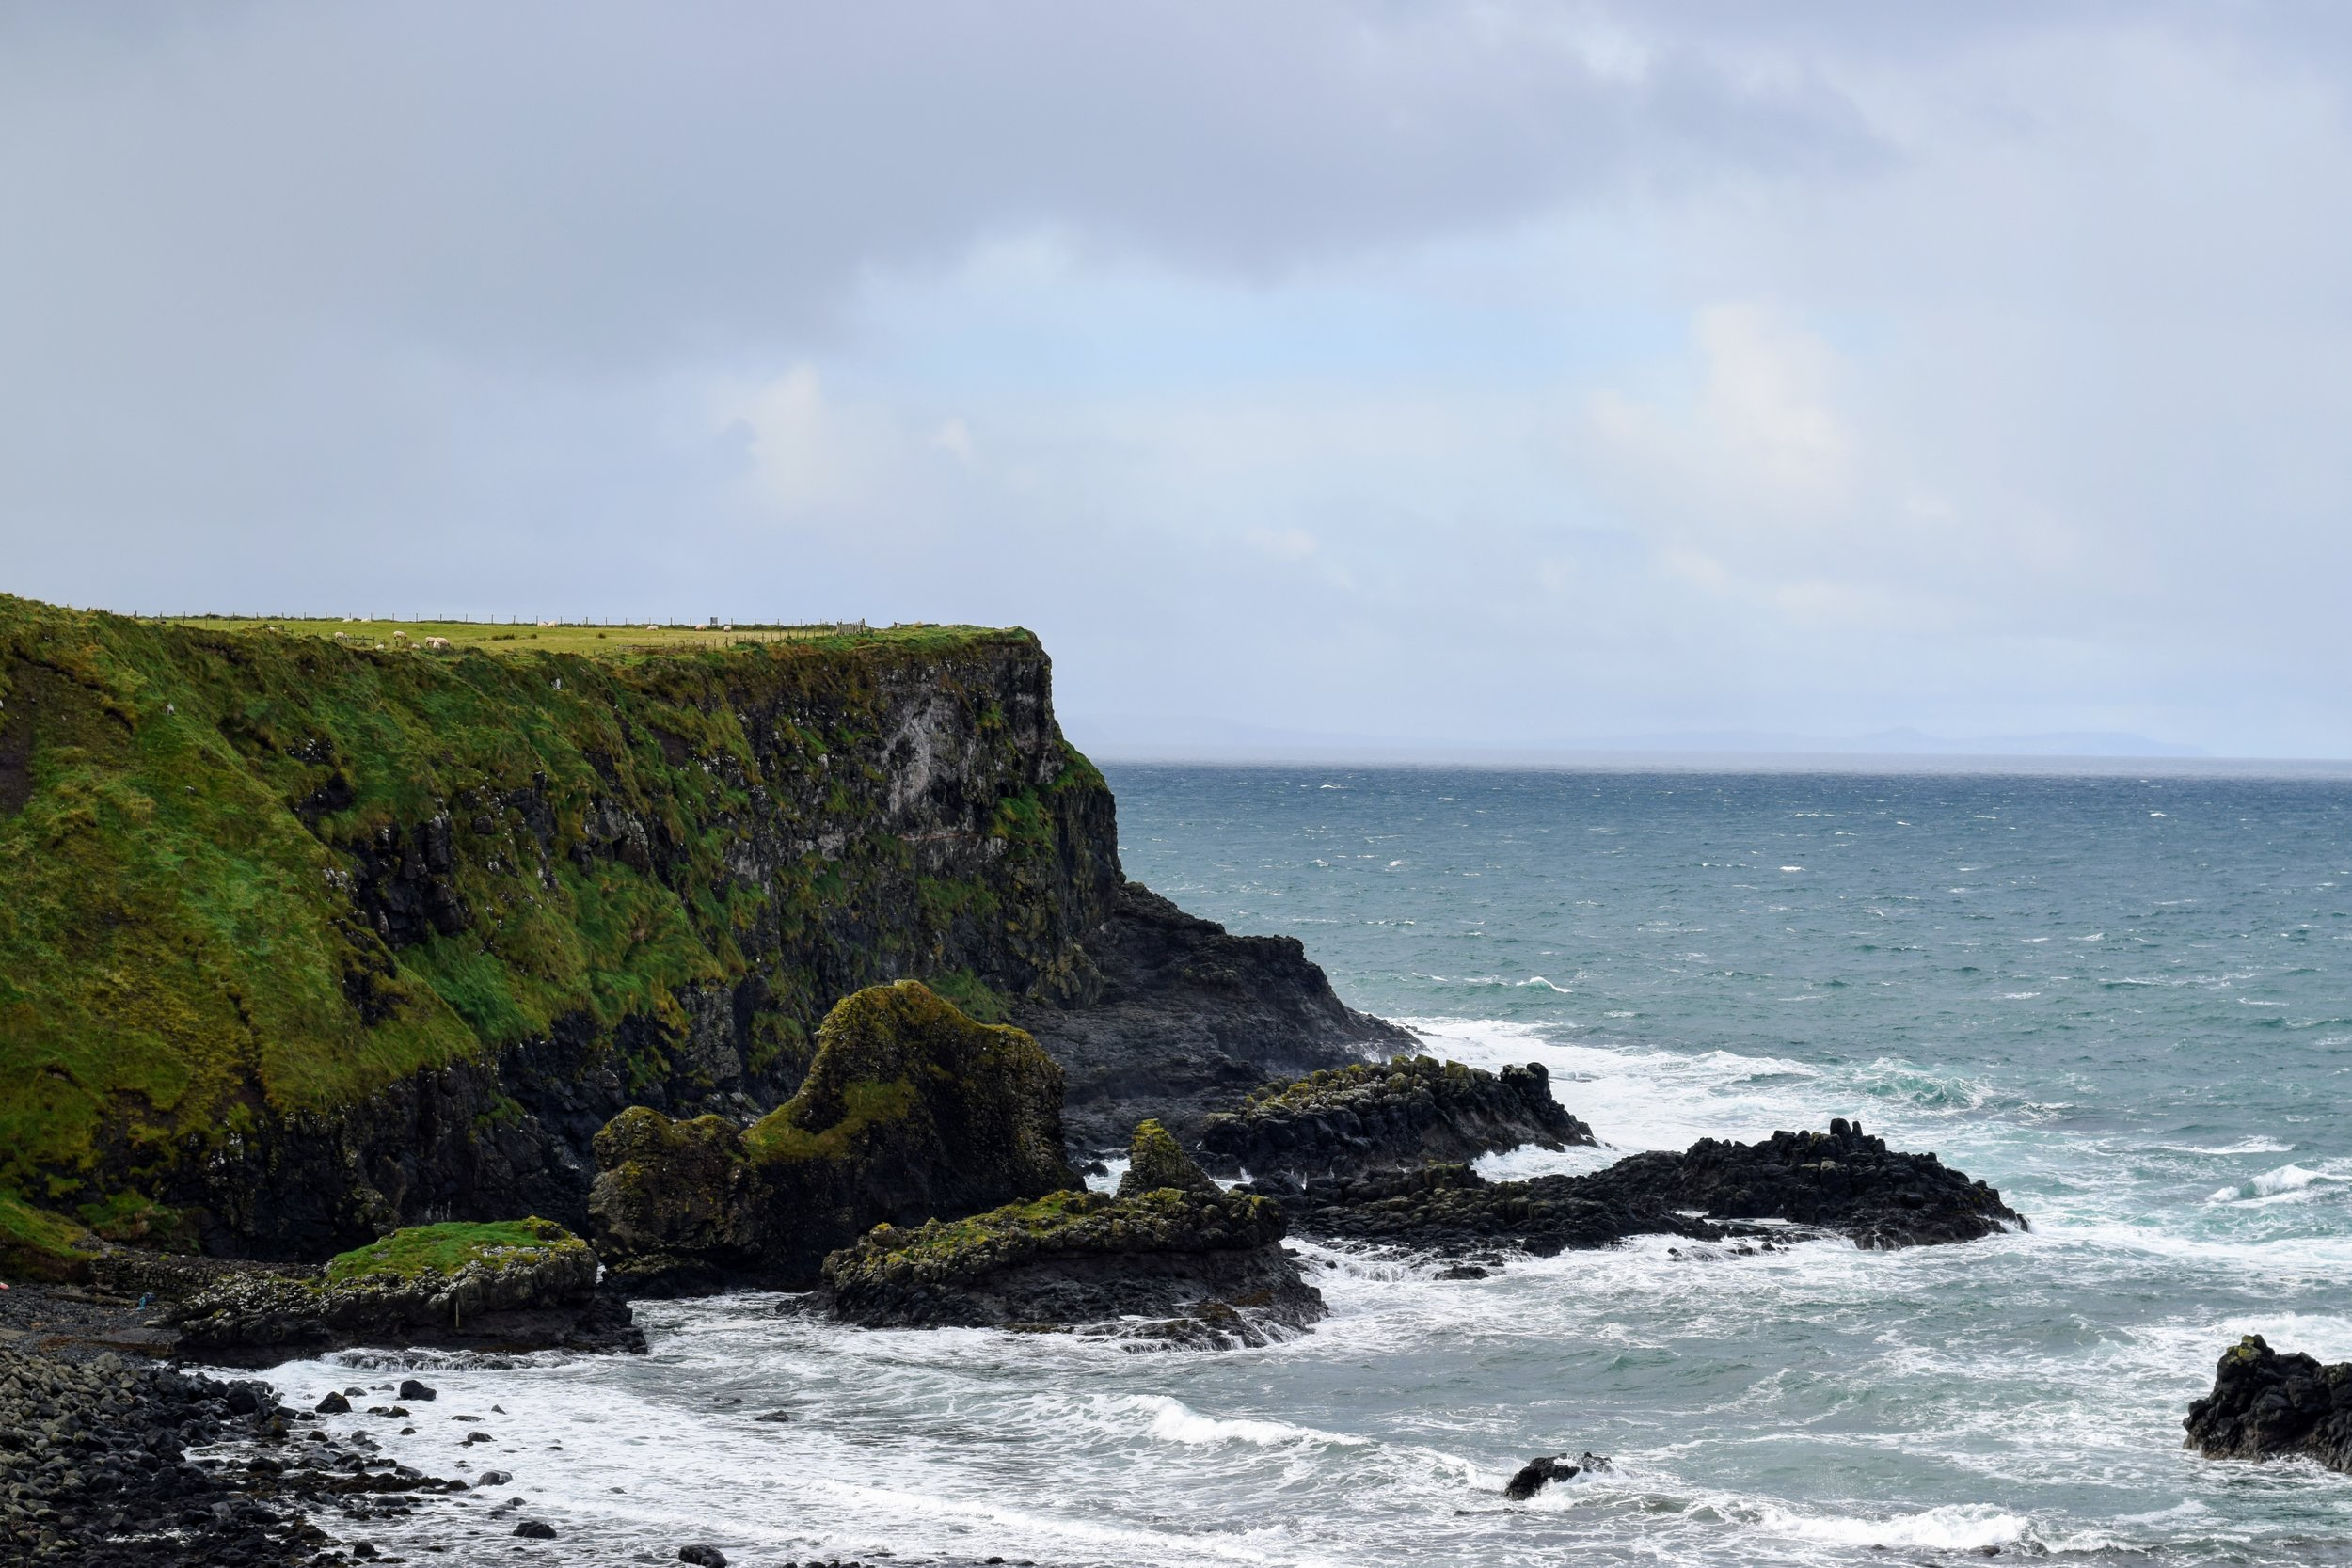 Sheep grazing near Giant's Causeway  (Nikon D3330, 50mm, f/8, 1/250 sec, ISO 250)